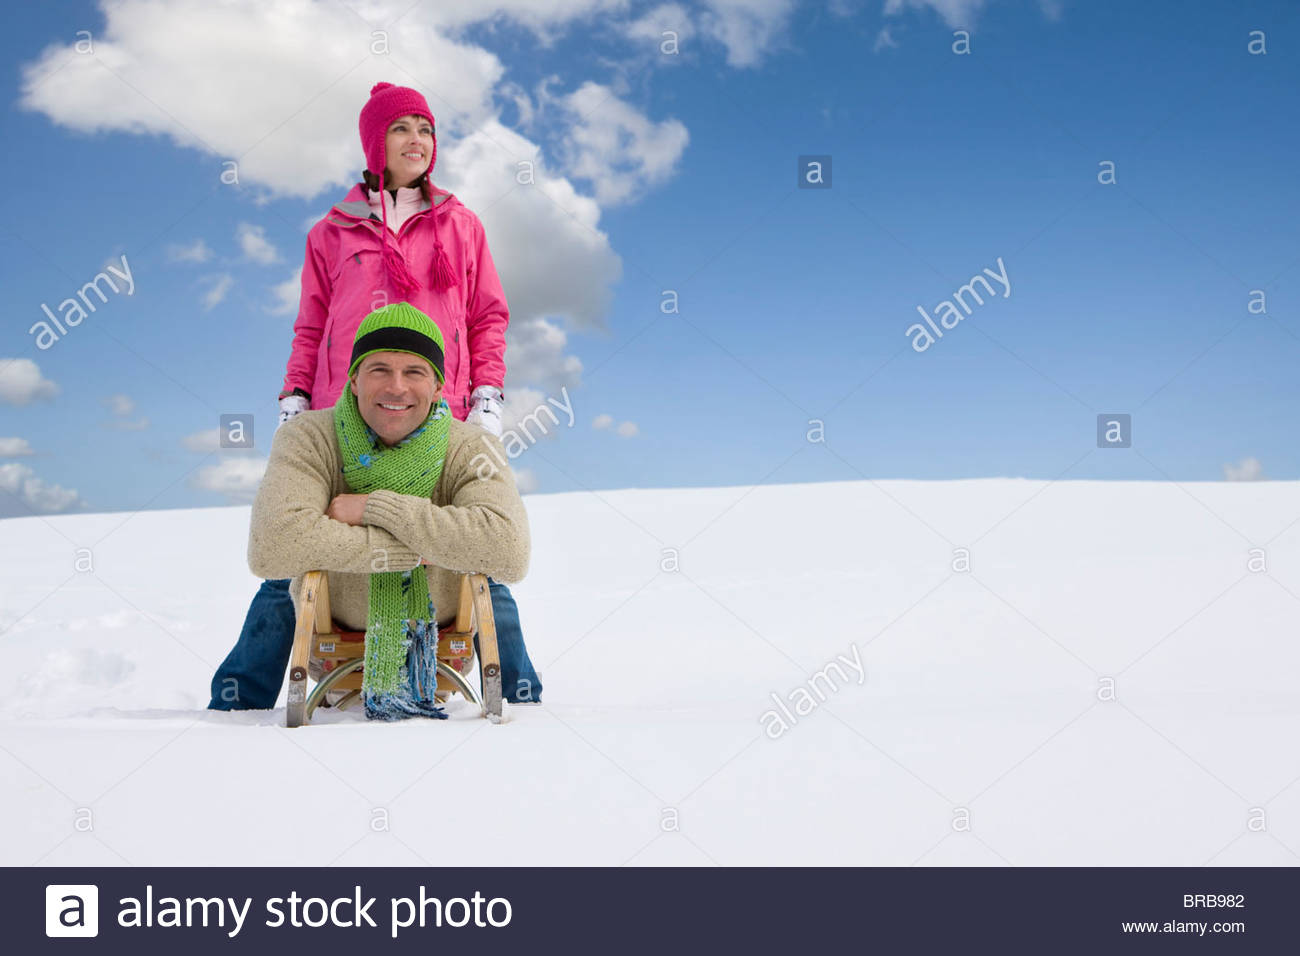 Man laying on sled with girlfriend standing in snow nearby - Stock Image